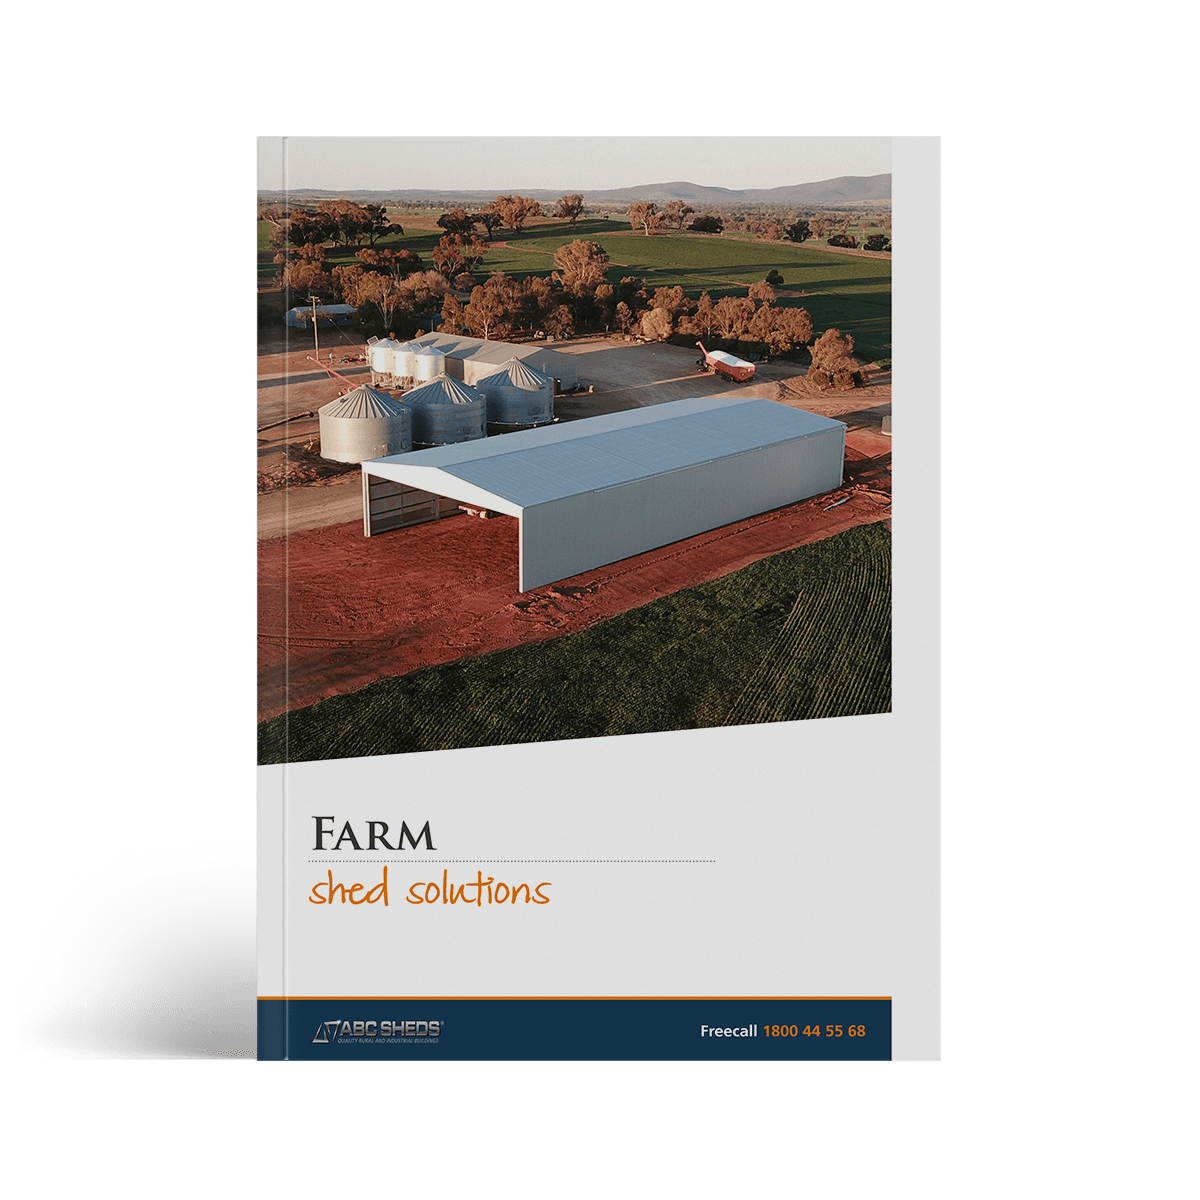 ABC Sheds farm sheds brochure